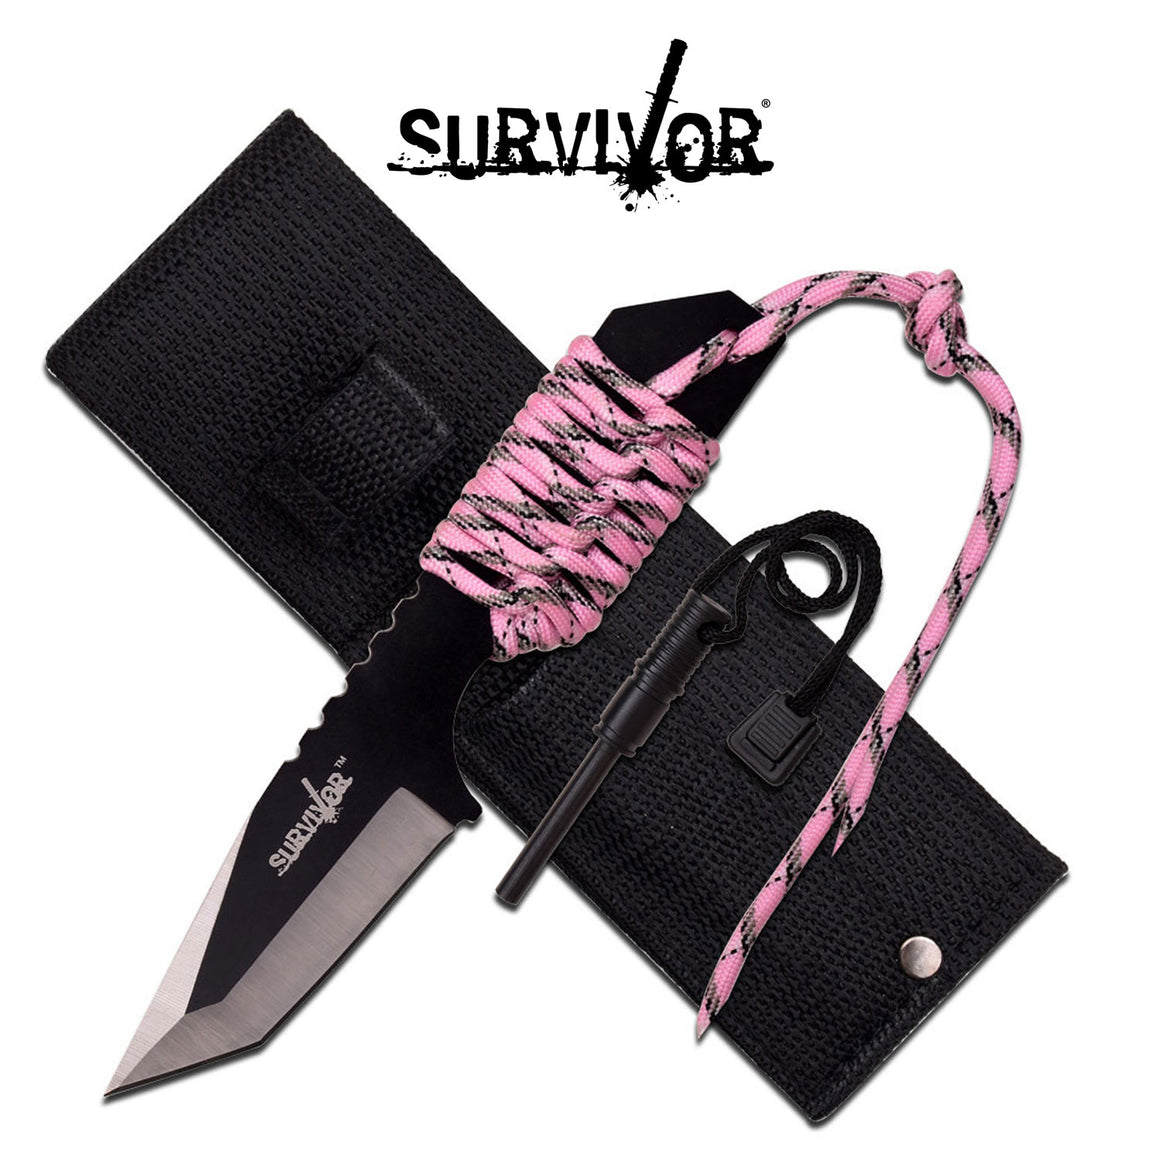 Survivor HK-106320PK Fixed Blade Knife